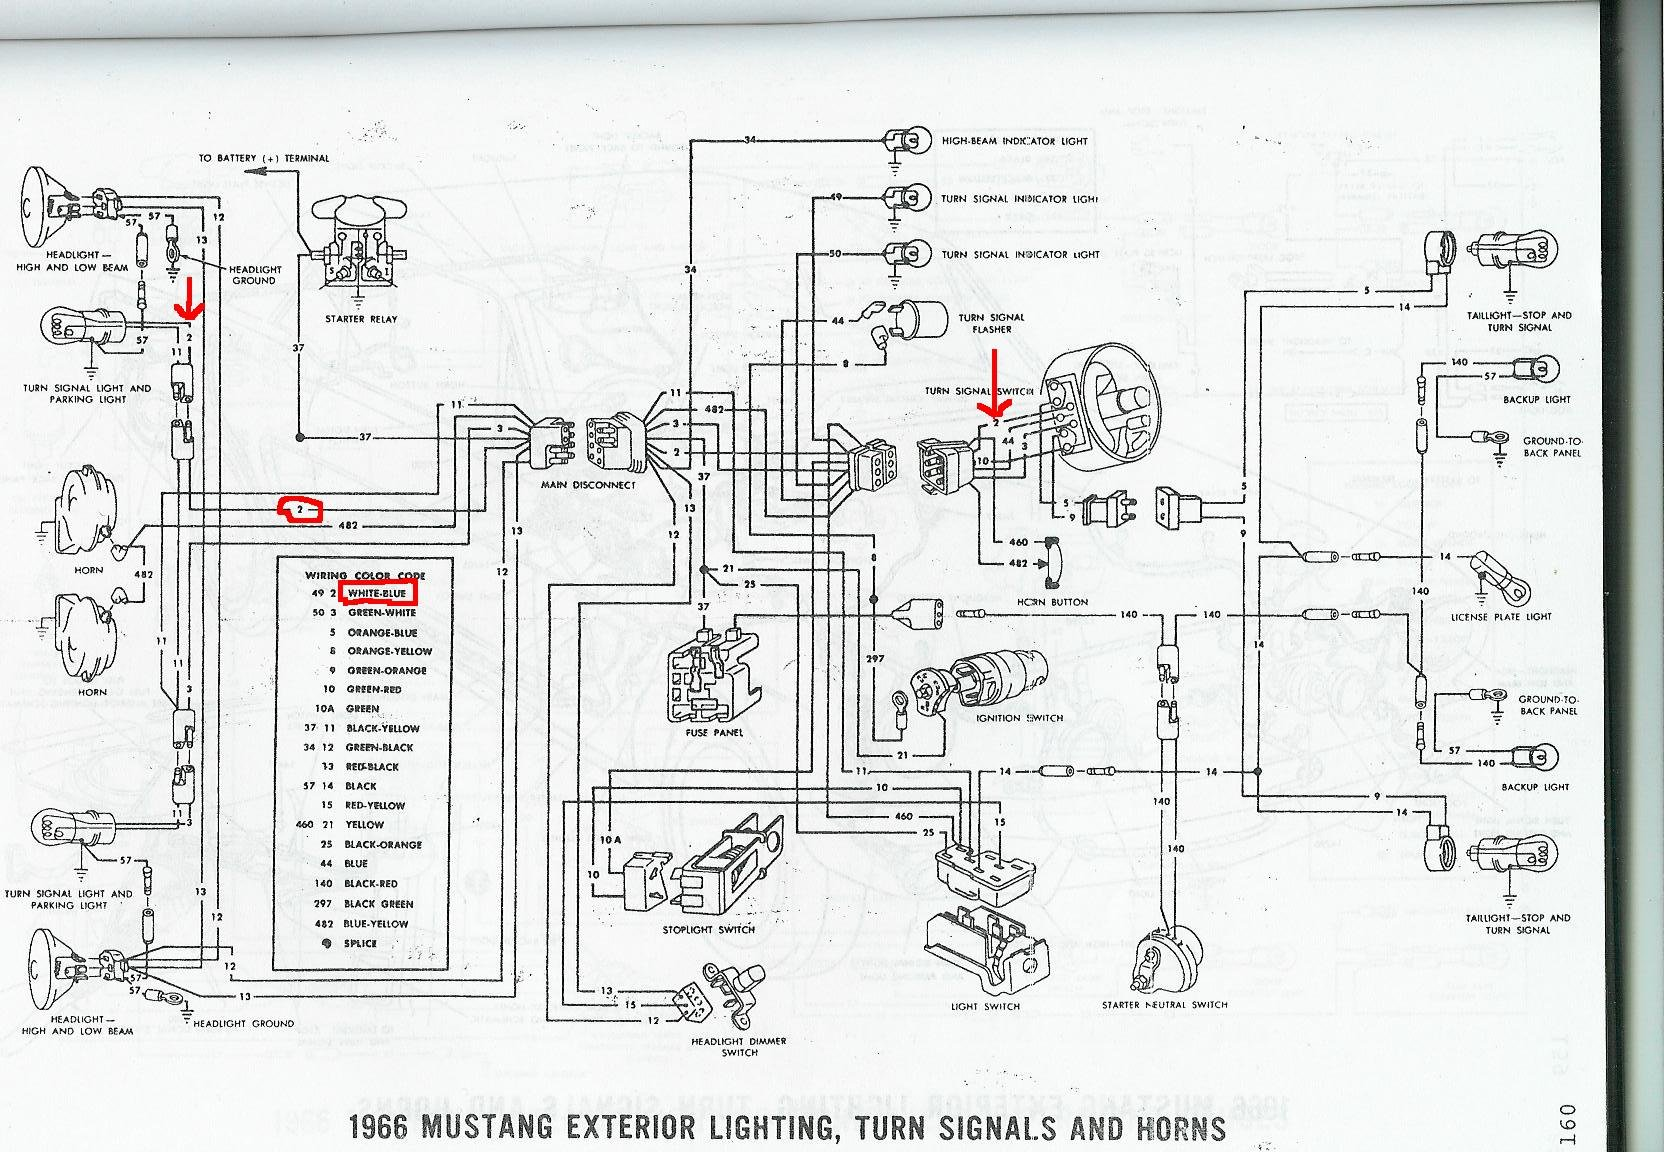 1970 Mustang Wiring Diagram Free Guide And Troubleshooting Of For 69 Chevelle Park Lights Wire Diagrams Scematic Rh 41 Jessicadonath De 1969 Online